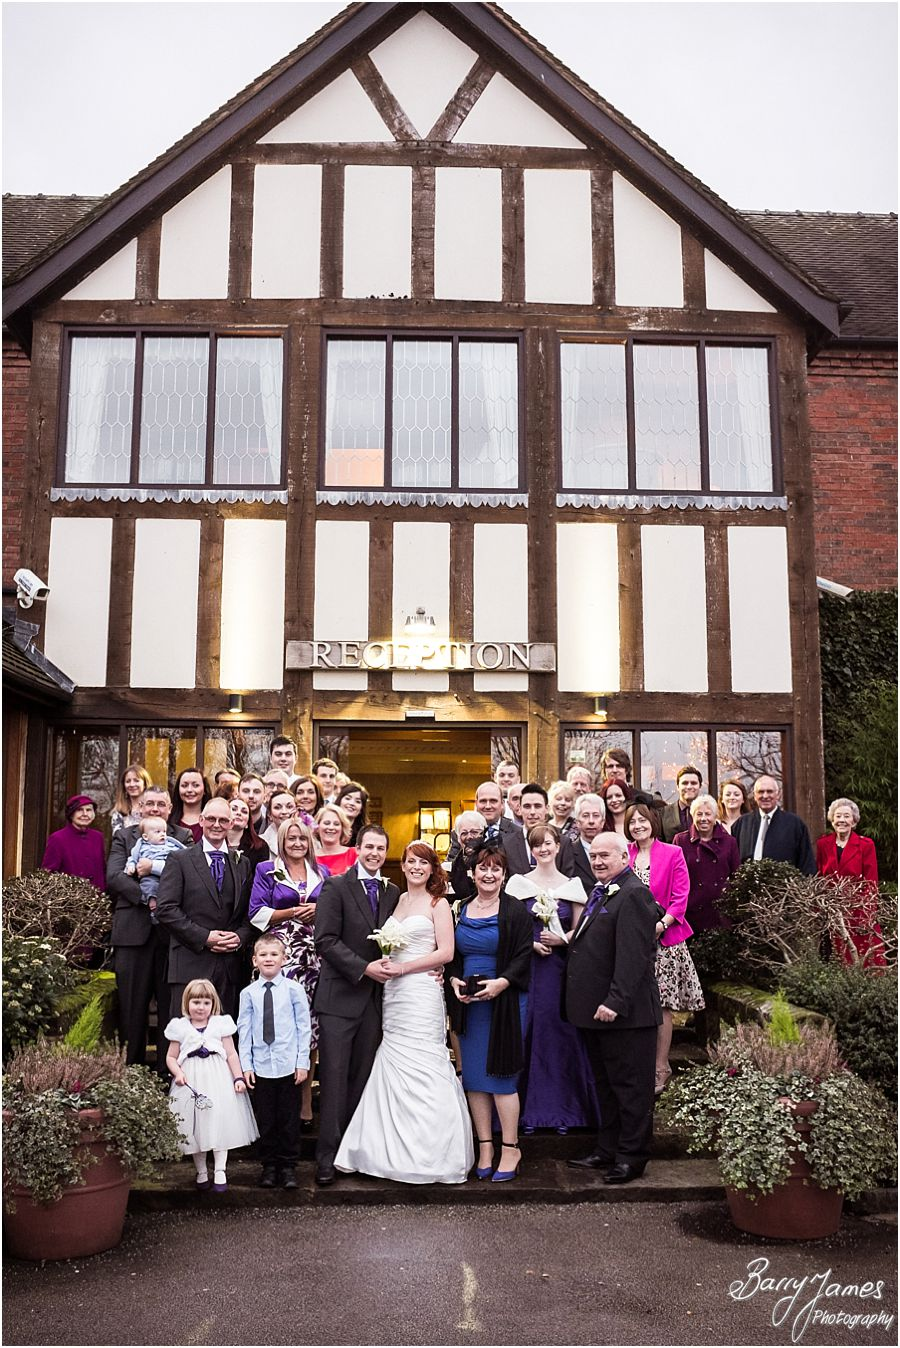 Creative modern wedding photographs of a Moat House weddings in Acton Trussell by Cannock Wedding Photographer Barry James